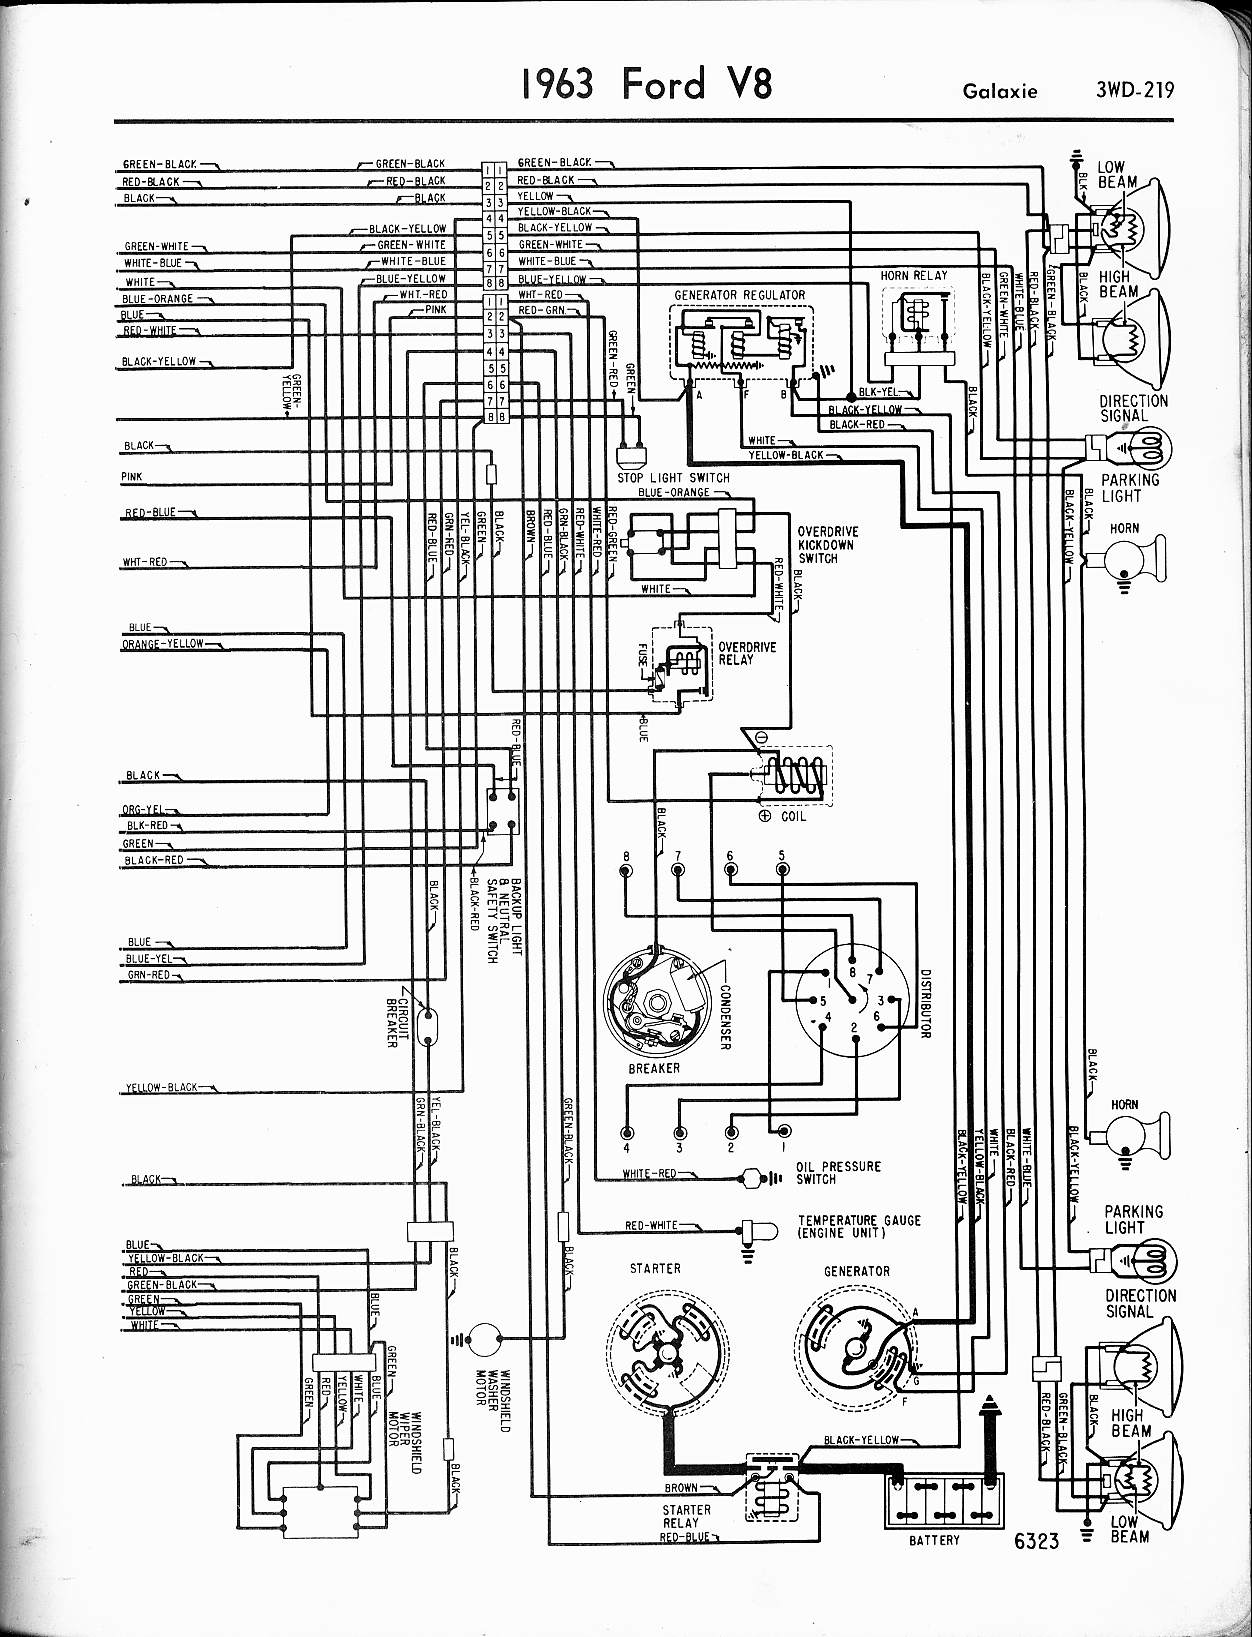 1962 Ford Fairlane Wiring Diagram - Box Wiring Diagram •